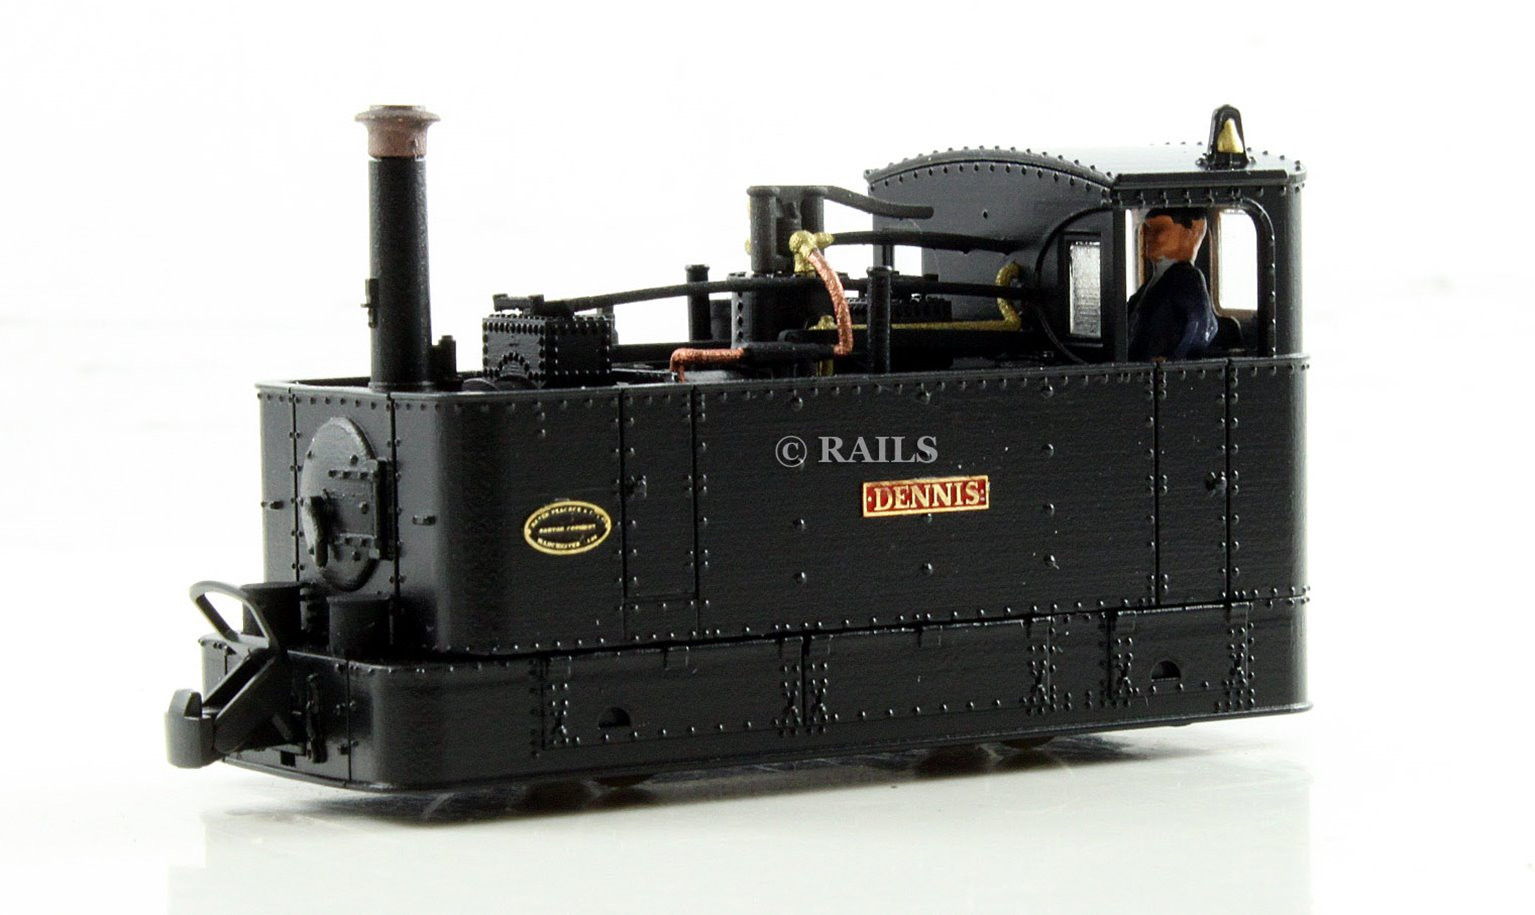 FOURDEES LIMITED OO9 SCALE 42-204 'DENNIS' c1930 BLACK GLYN VALLEY TRAMWAY LOCO